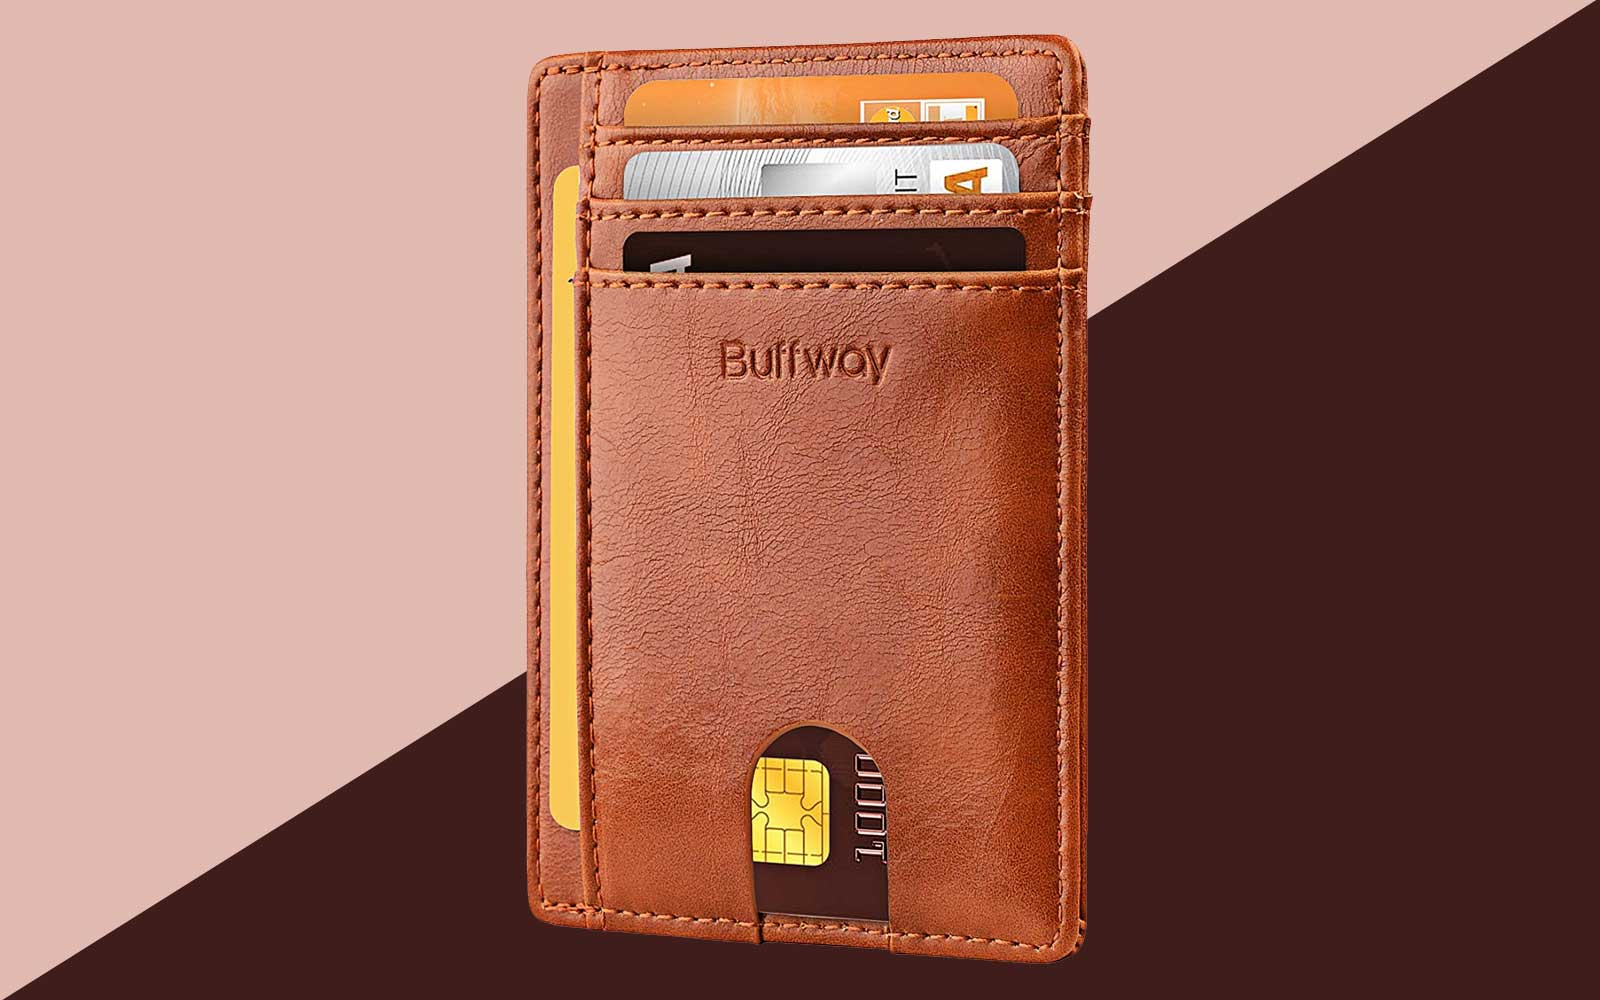 Buffway RFID-blocking Wallet